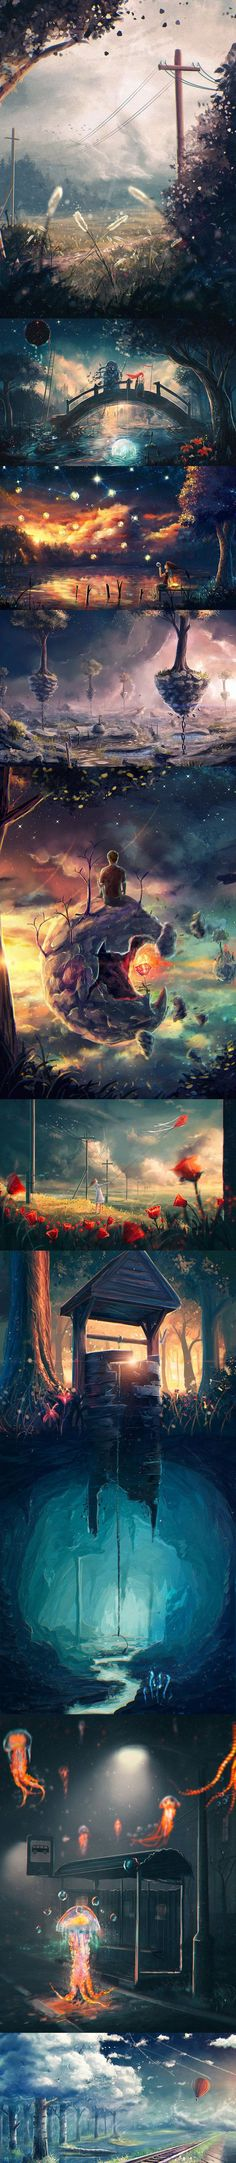 New Digital Art Landscape Dreams Posts Ideas Fantasy Places, Fantasy World, Fantasy Art, Fantasy Landscape, Landscape Art, Anime Body, Anime Pokemon, Anime Plus, Anime Scenery